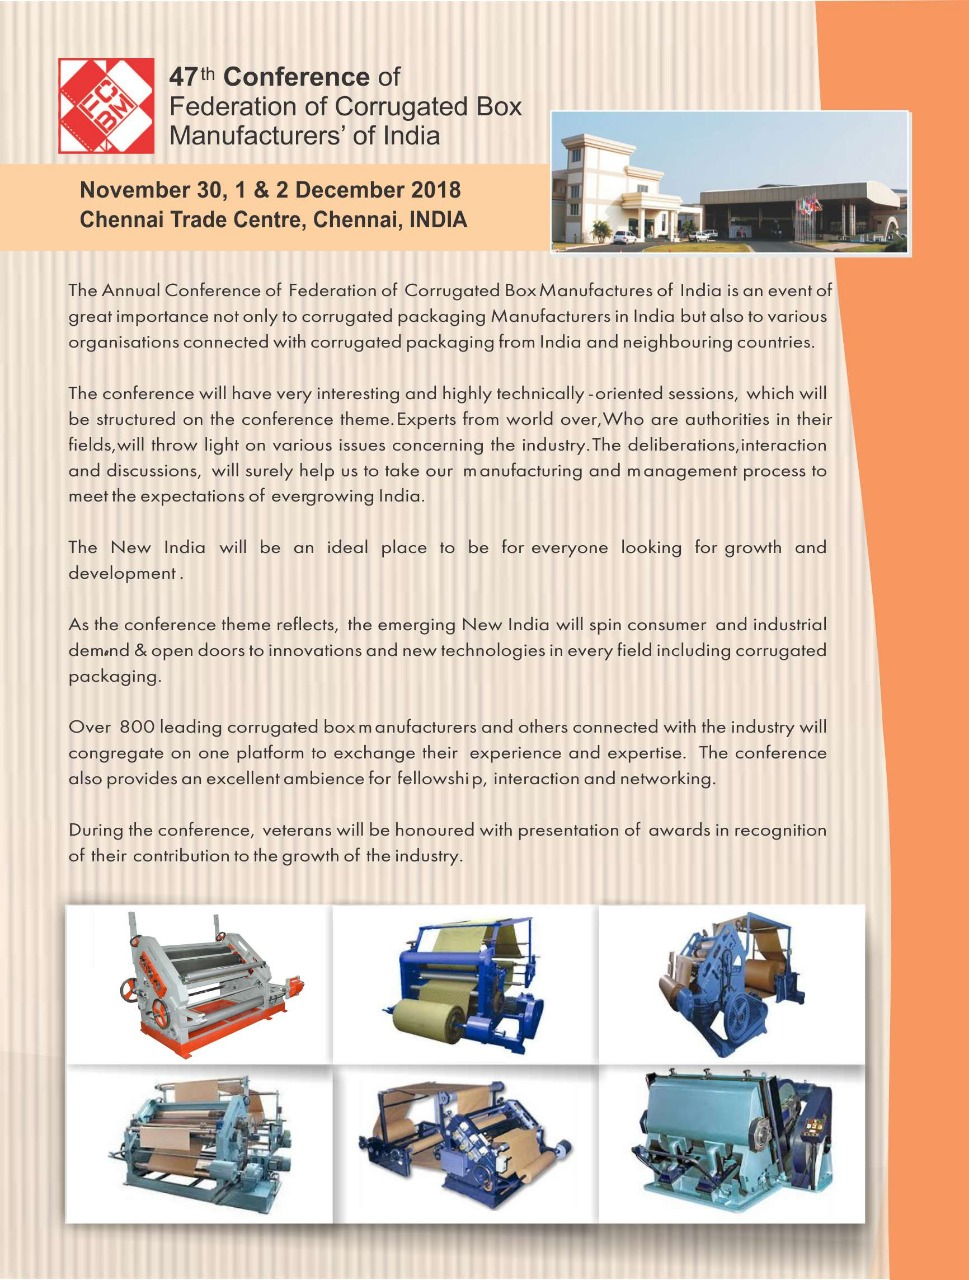 47th CONFERENCE OF FEDERTION OF CORRUGATED BOX MANUFATURESS OF INDIA